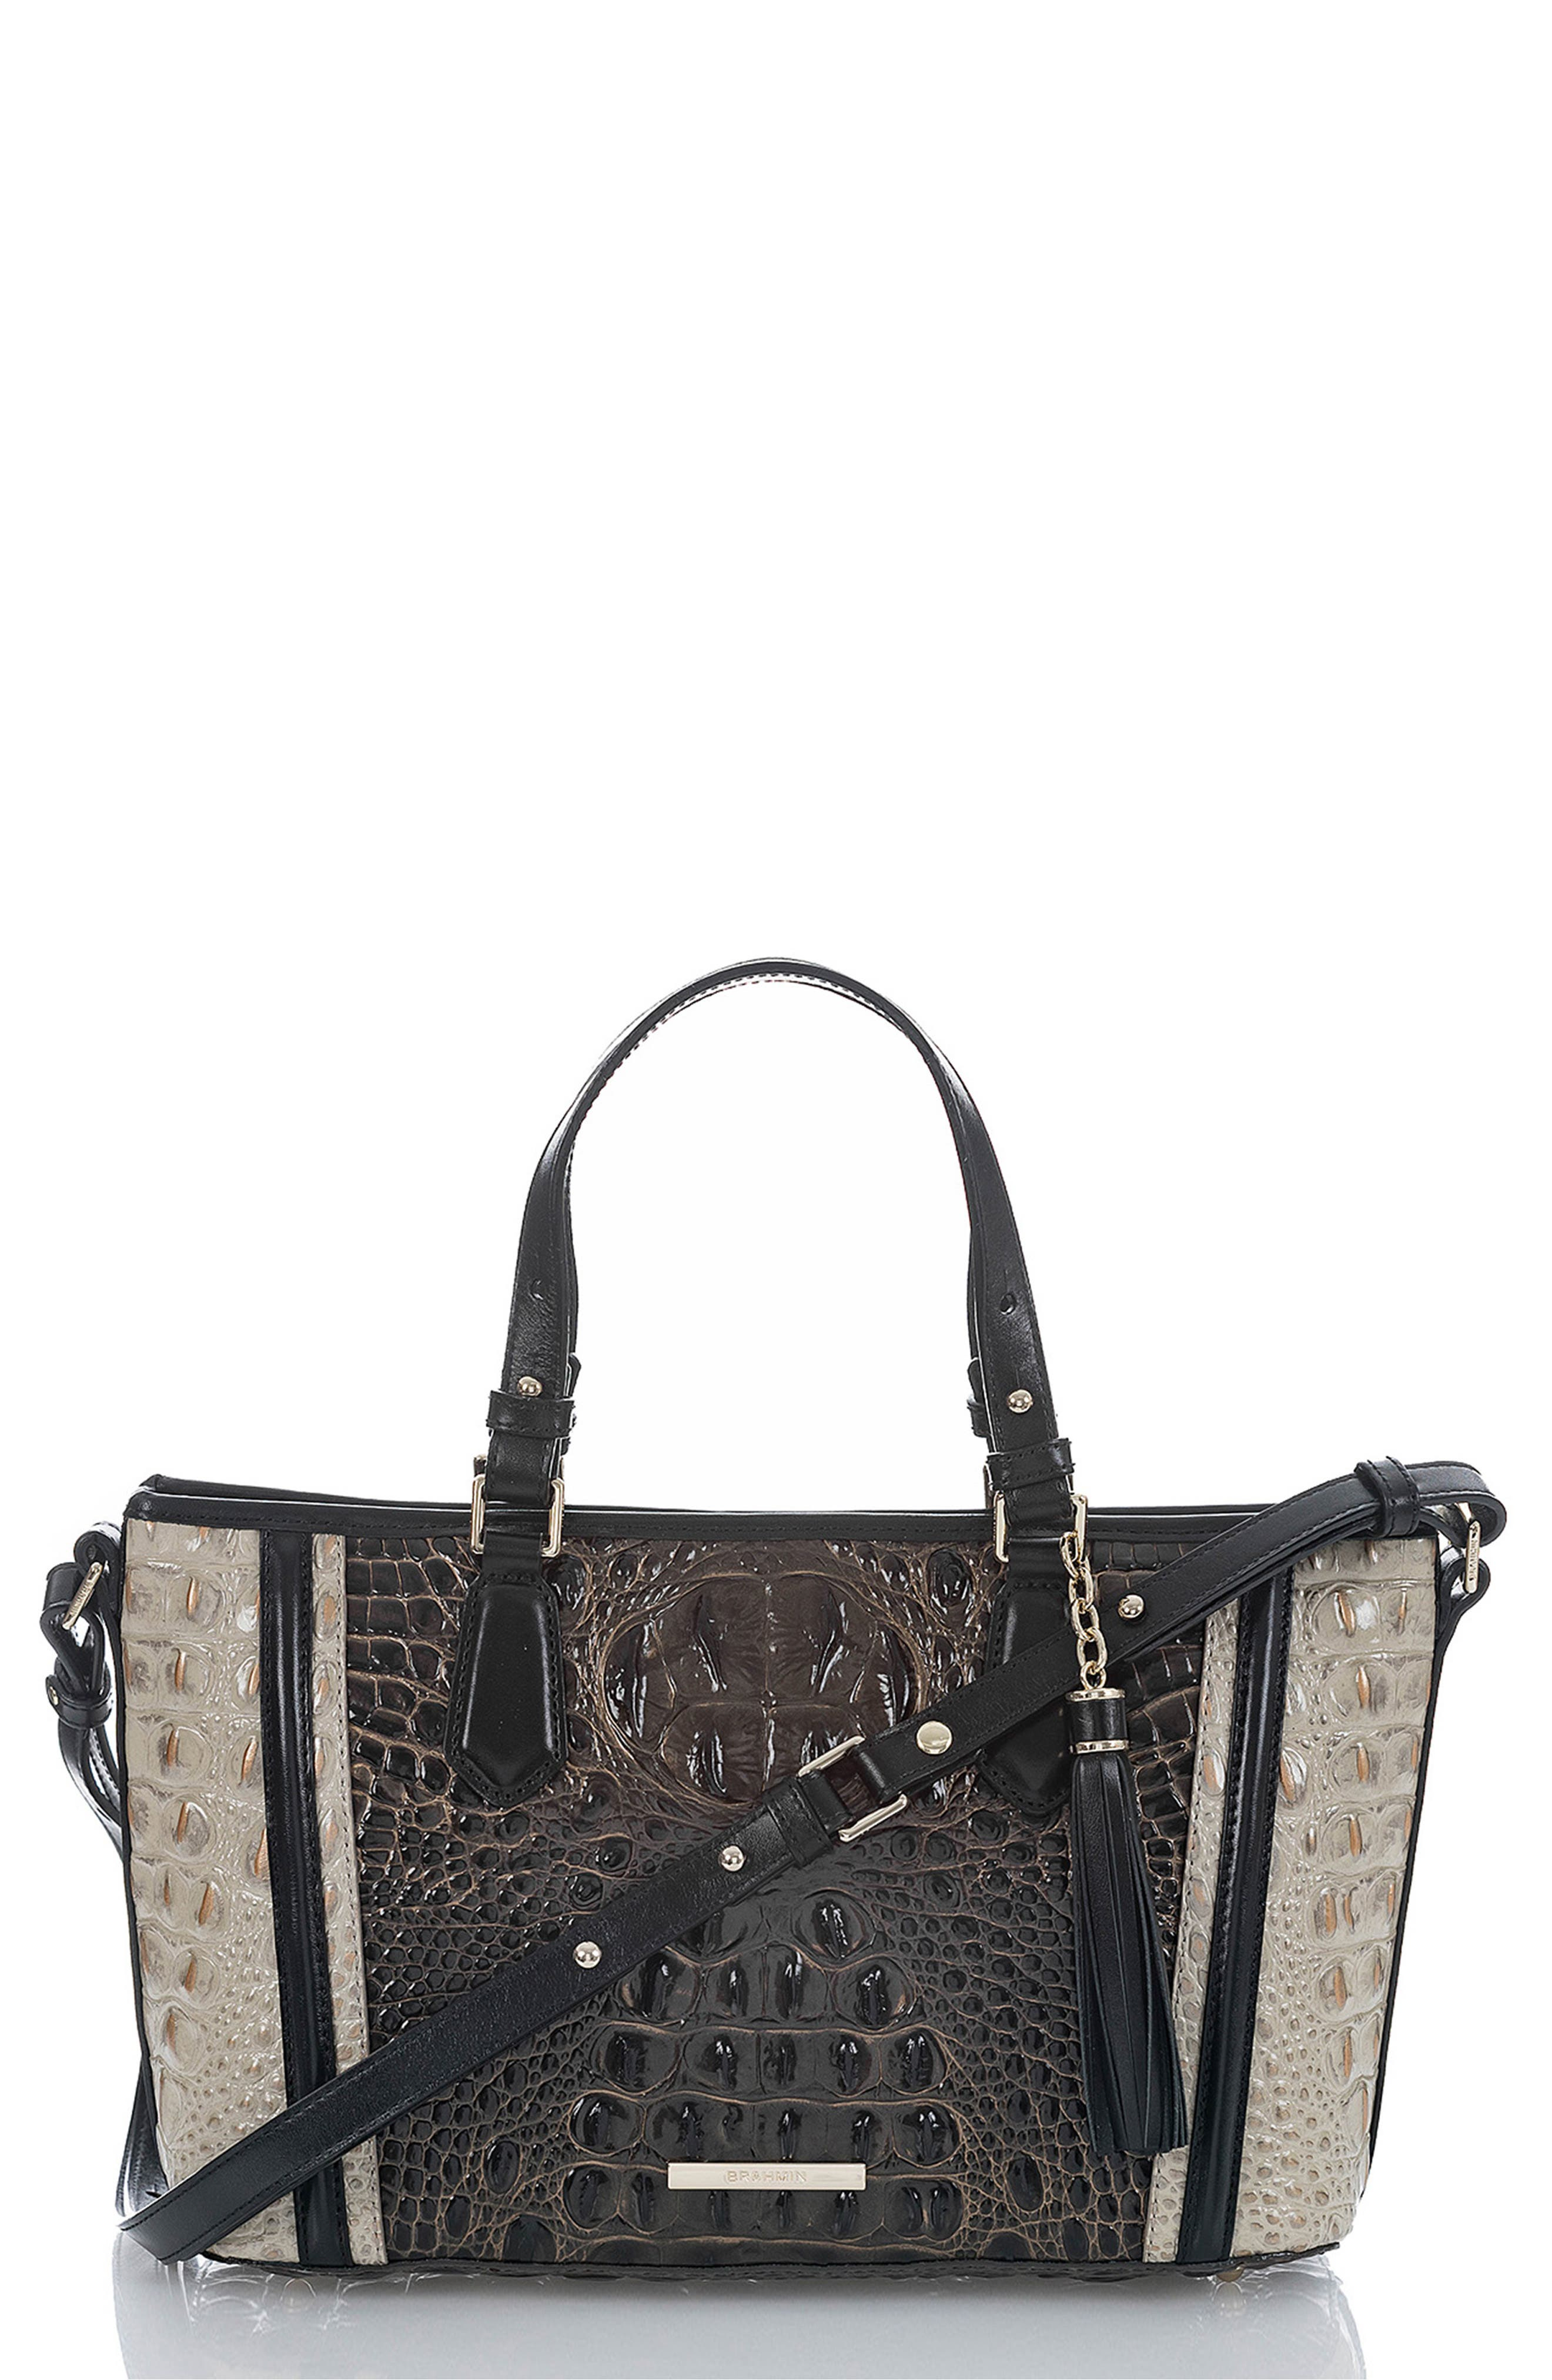 BRAHMIN Mini Asher Croc Embossed Leather Tote, Main, color, 023